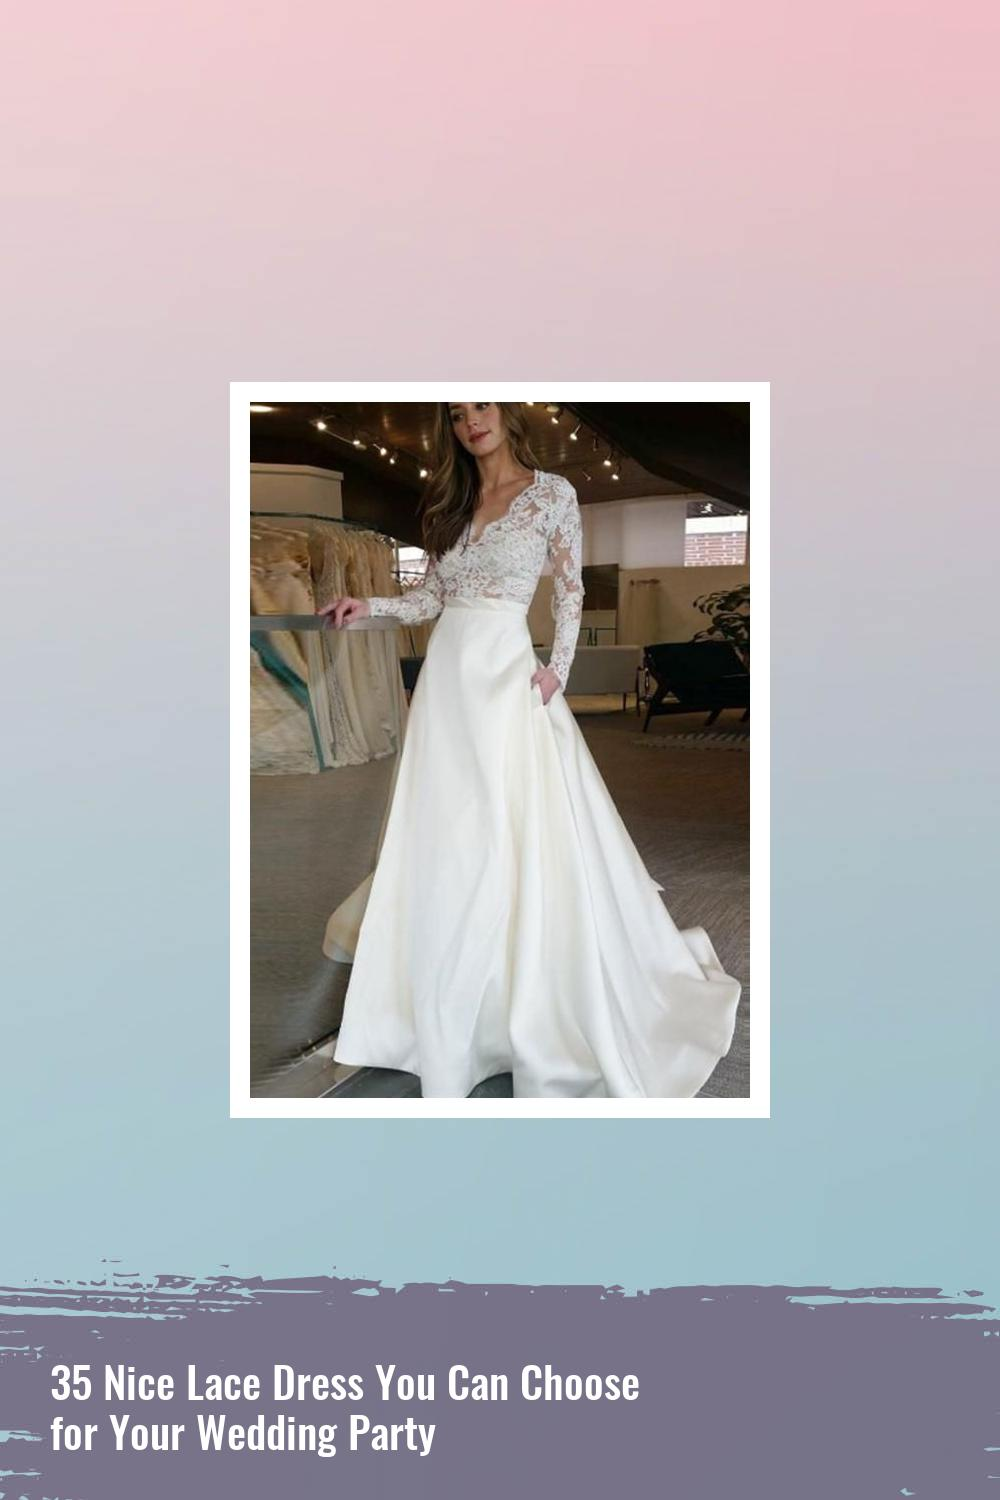 35 Nice Lace Dress You Can Choose for Your Wedding Party 27